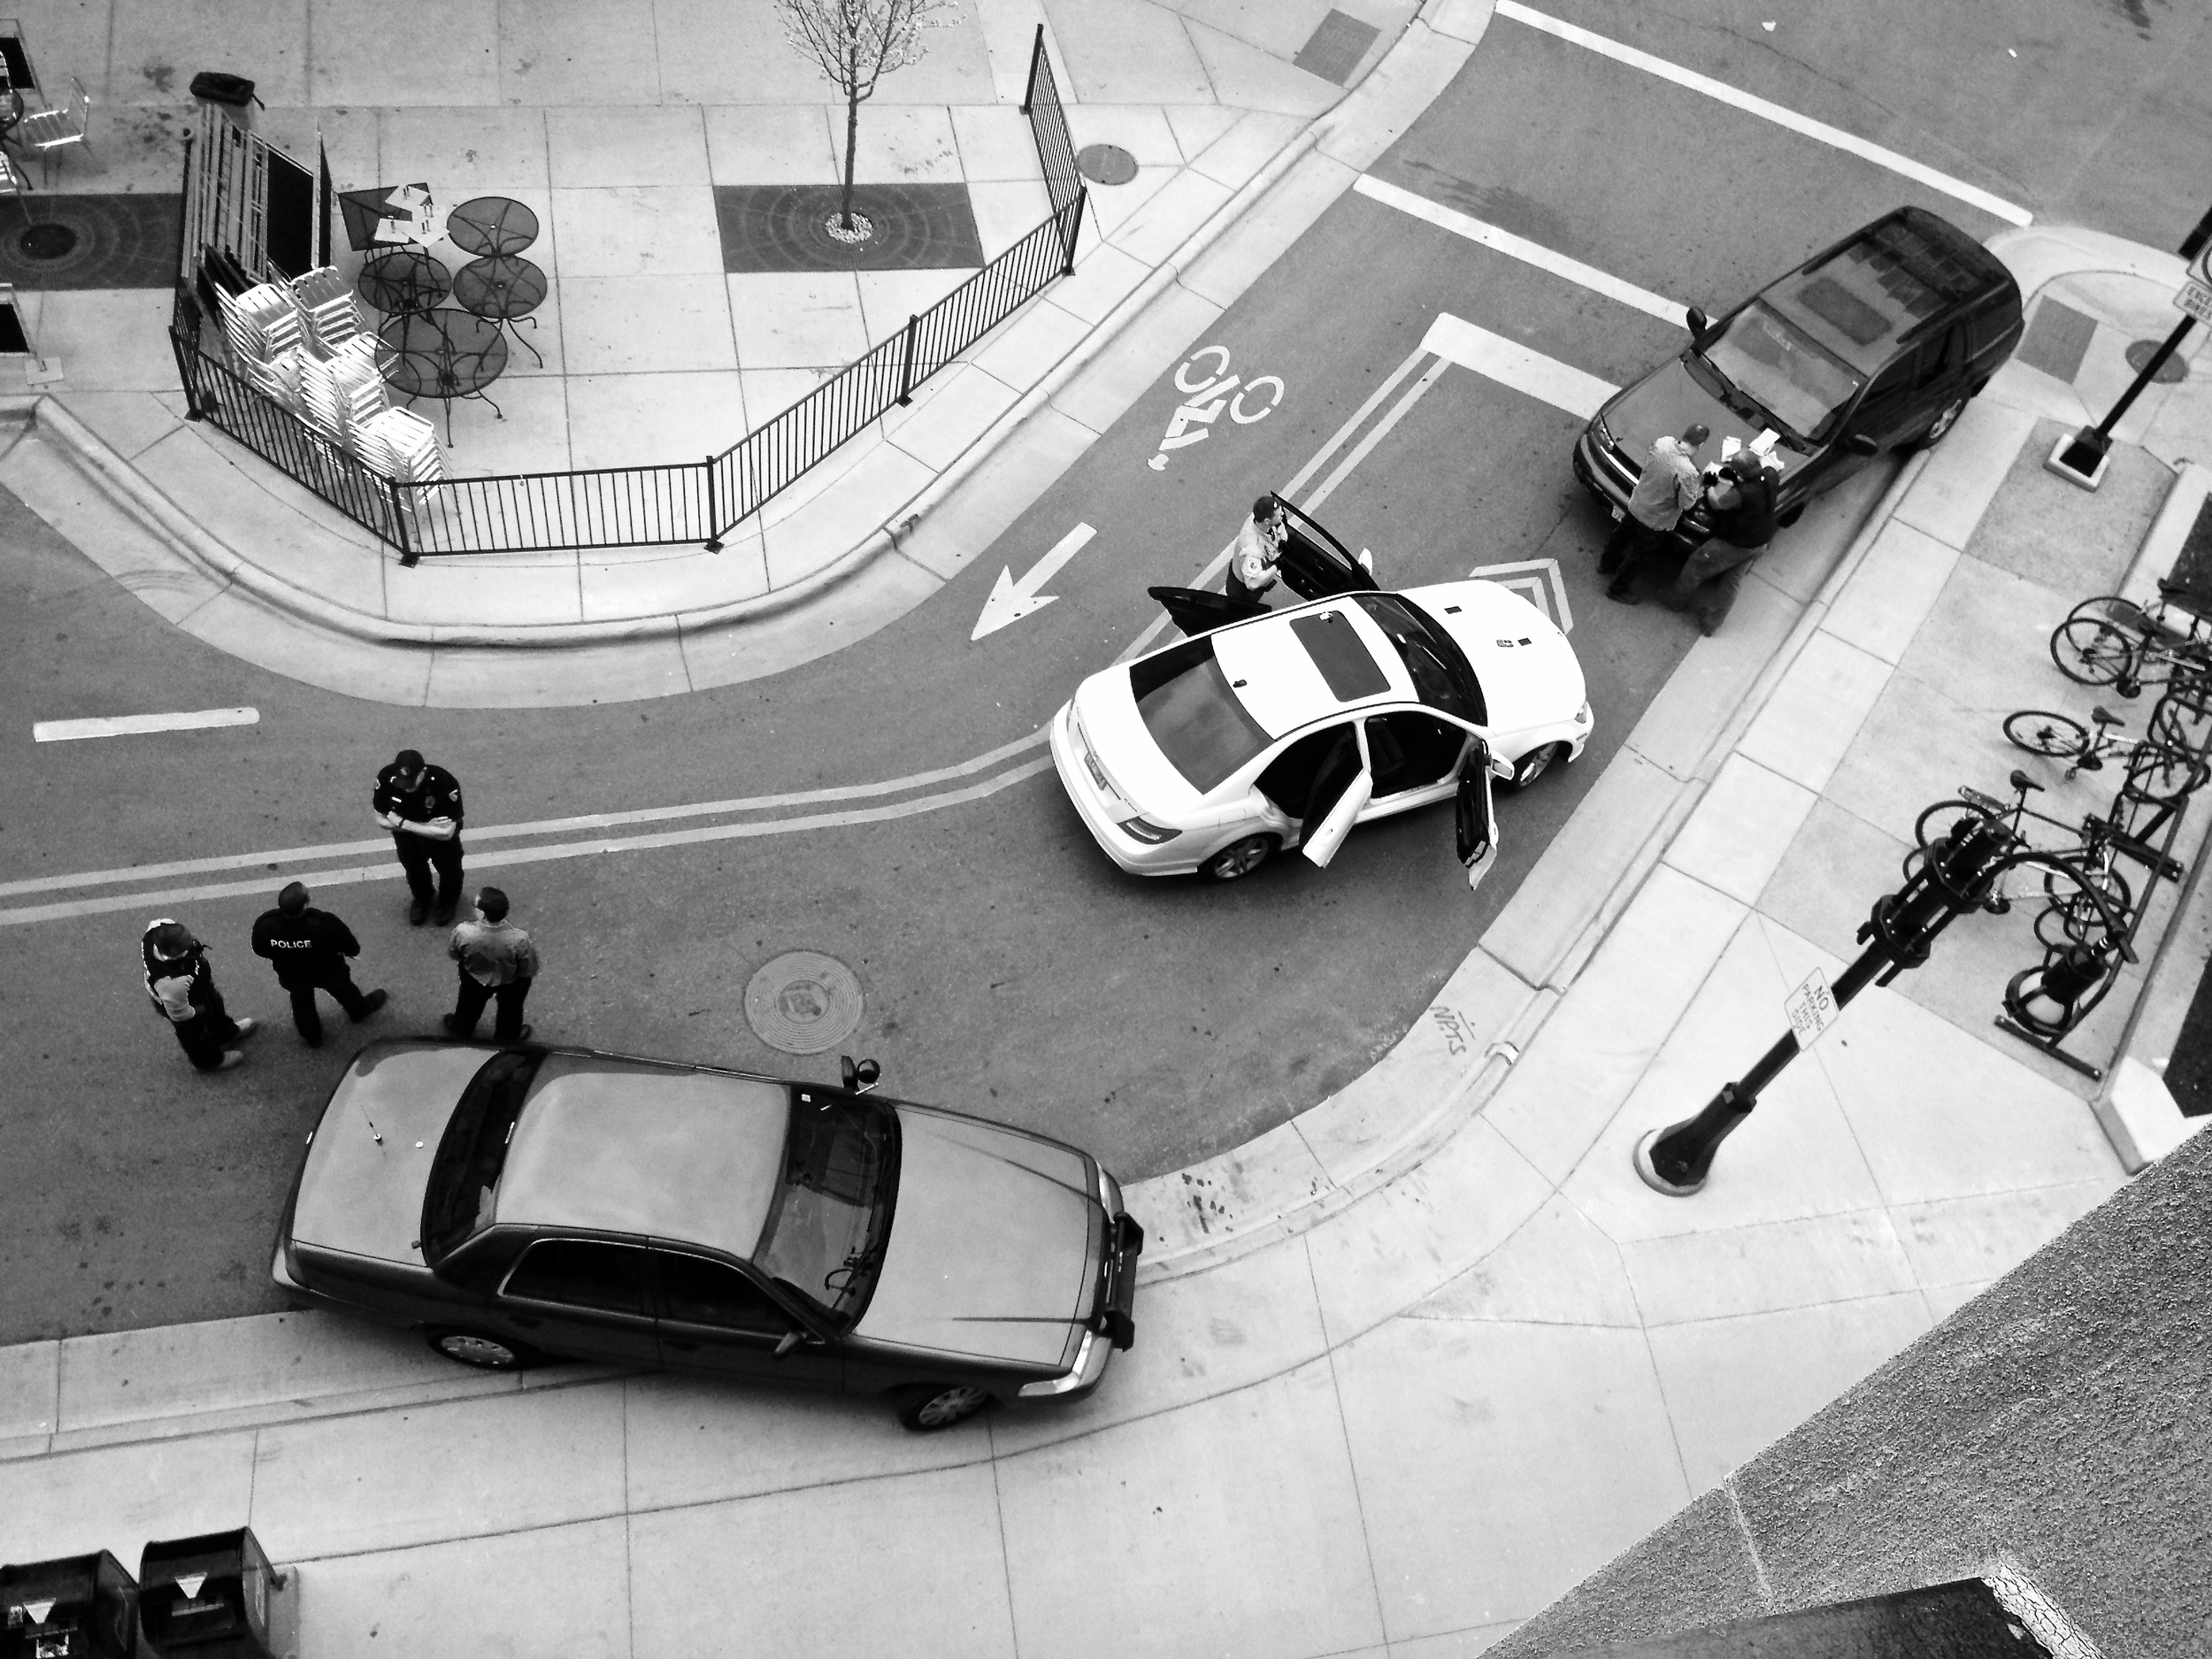 Scene of the Crime (2). Downtown. Madison, Wisconsin. April 2016. Police talk and gather evidence at the scene of an armed traffic stop and arrest.  © William D. Walker